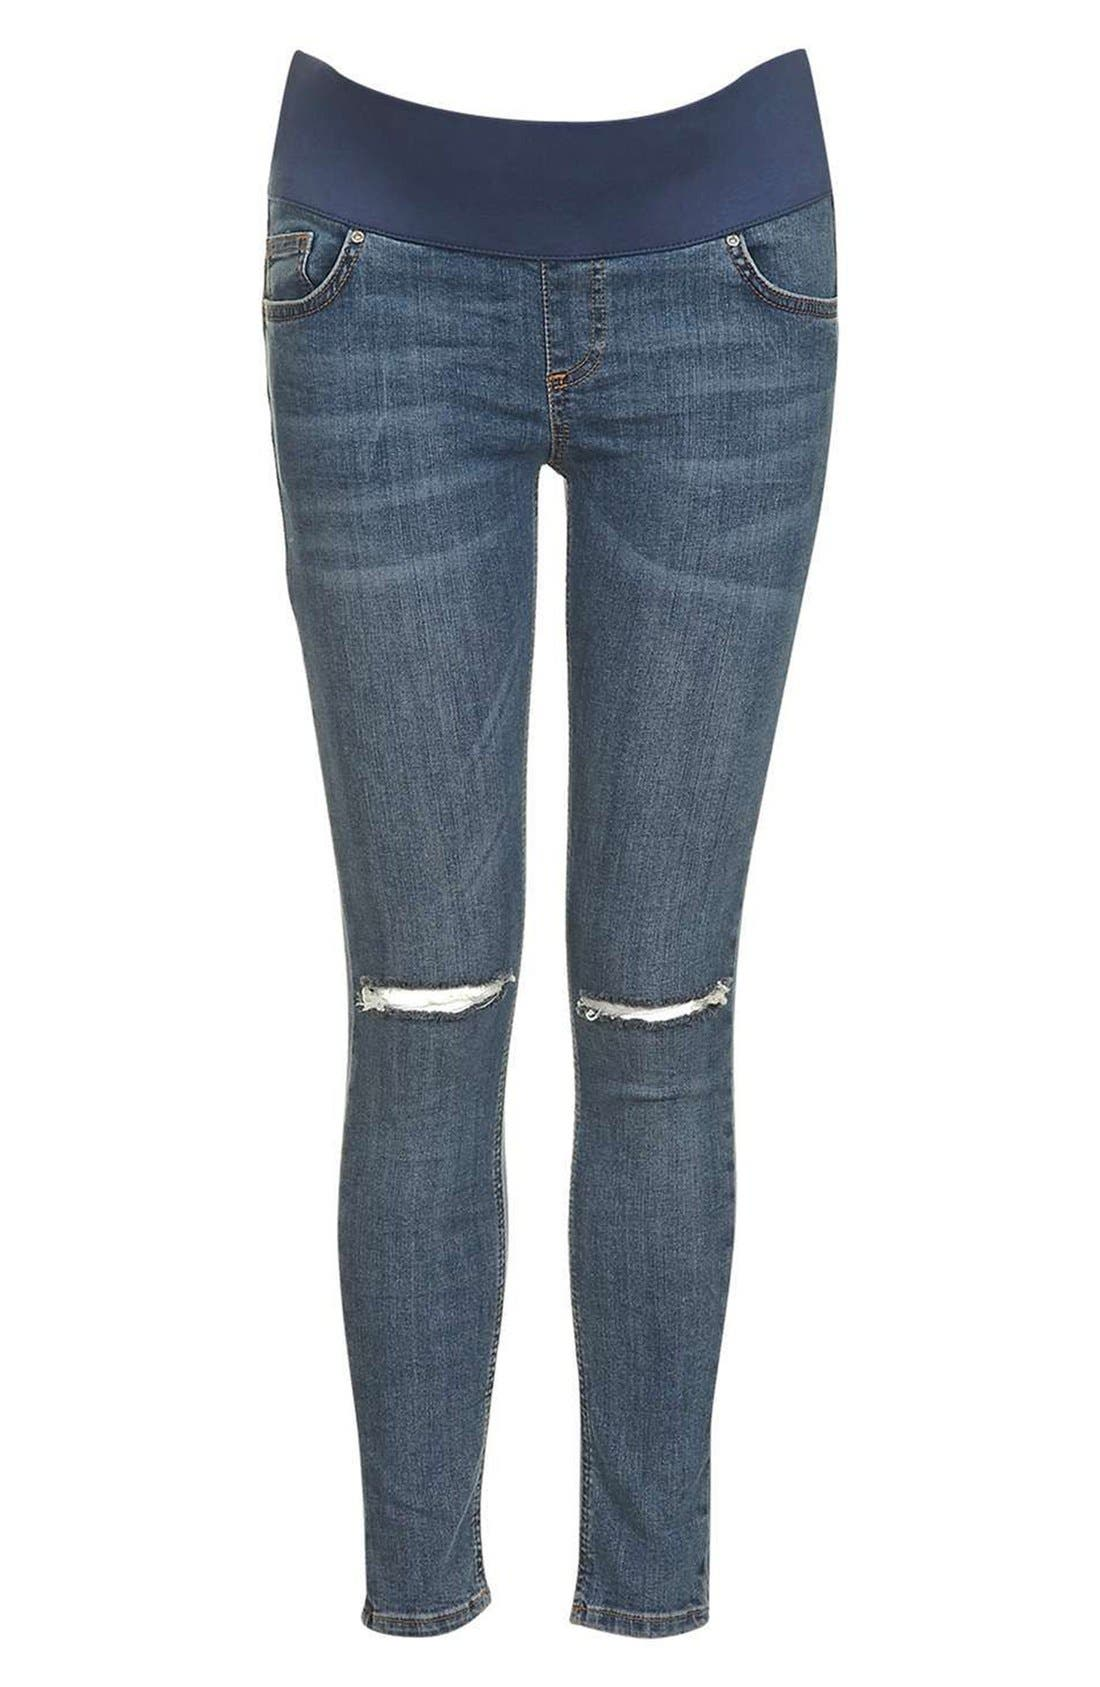 Topshop Moto Jamie Ripped Skinny Maternity Jeans